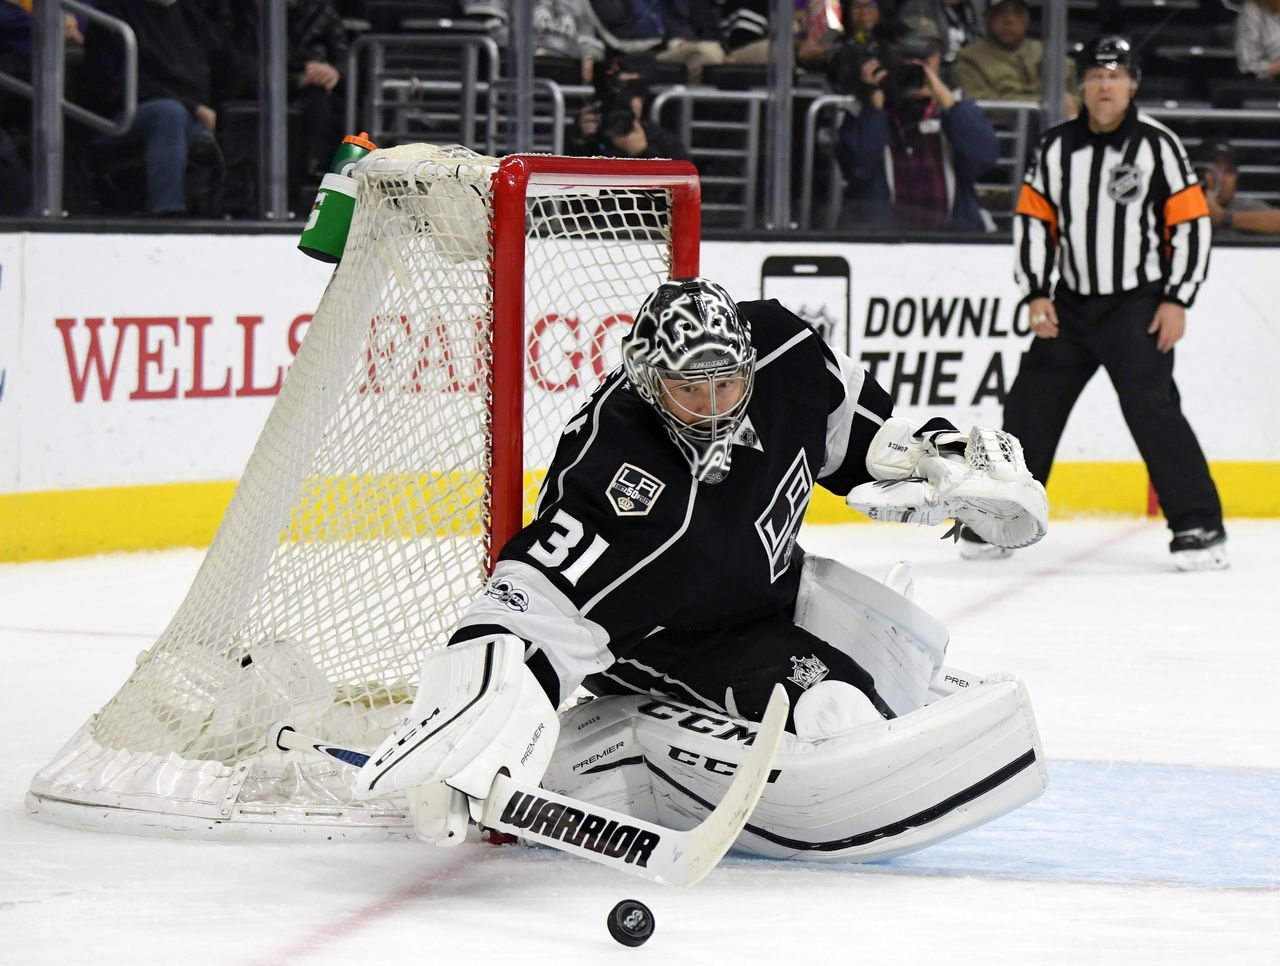 Cropped_2017-03-15t033400z_1383002227_nocid_rtrmadp_3_nhl-arizona-coyotes-at-los-angeles-kings